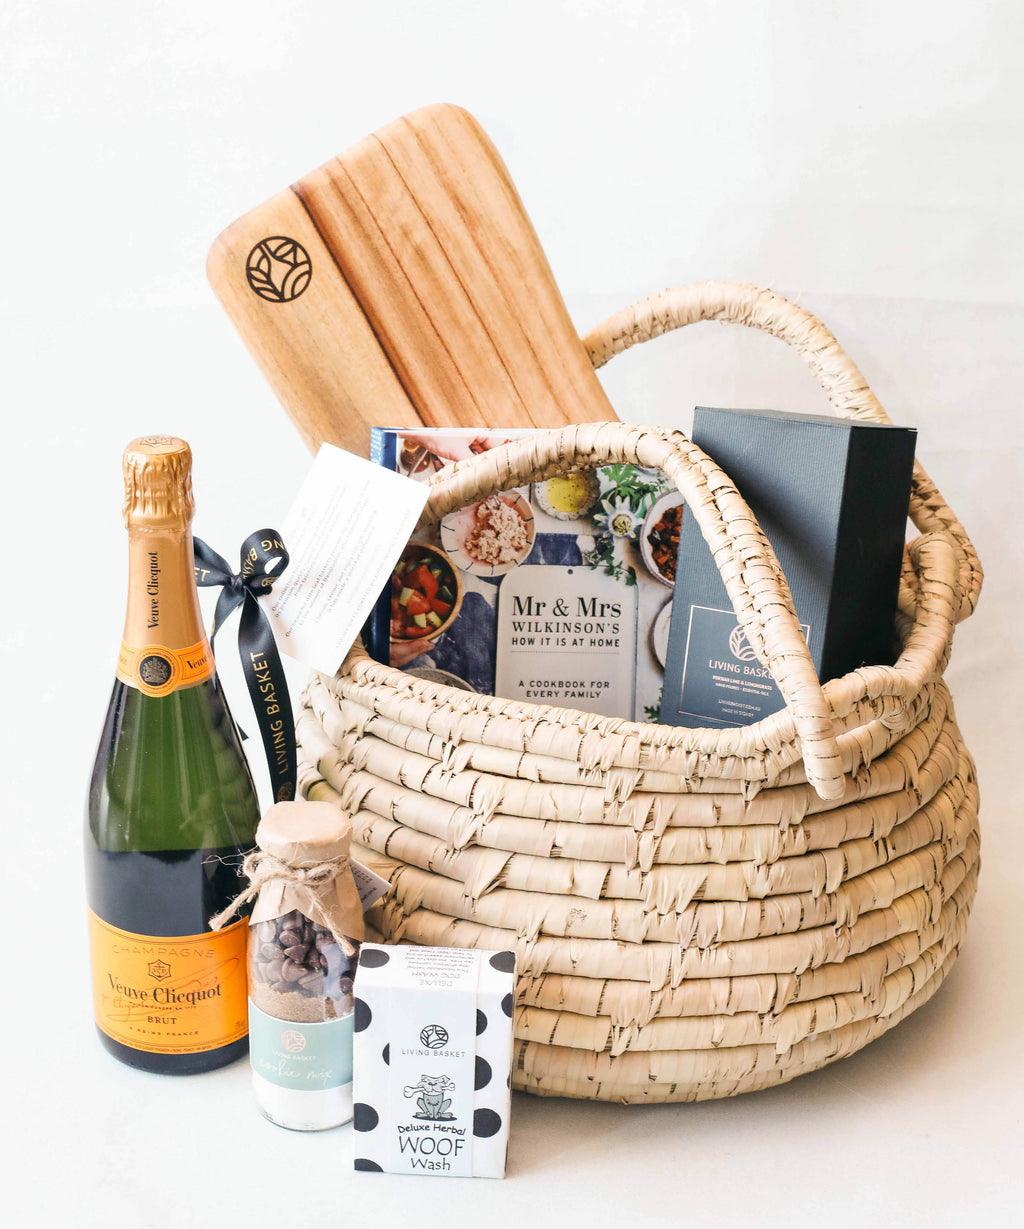 CELEBRATION FAMILY BASKET WITH PET AND VERVE CLICQUOT